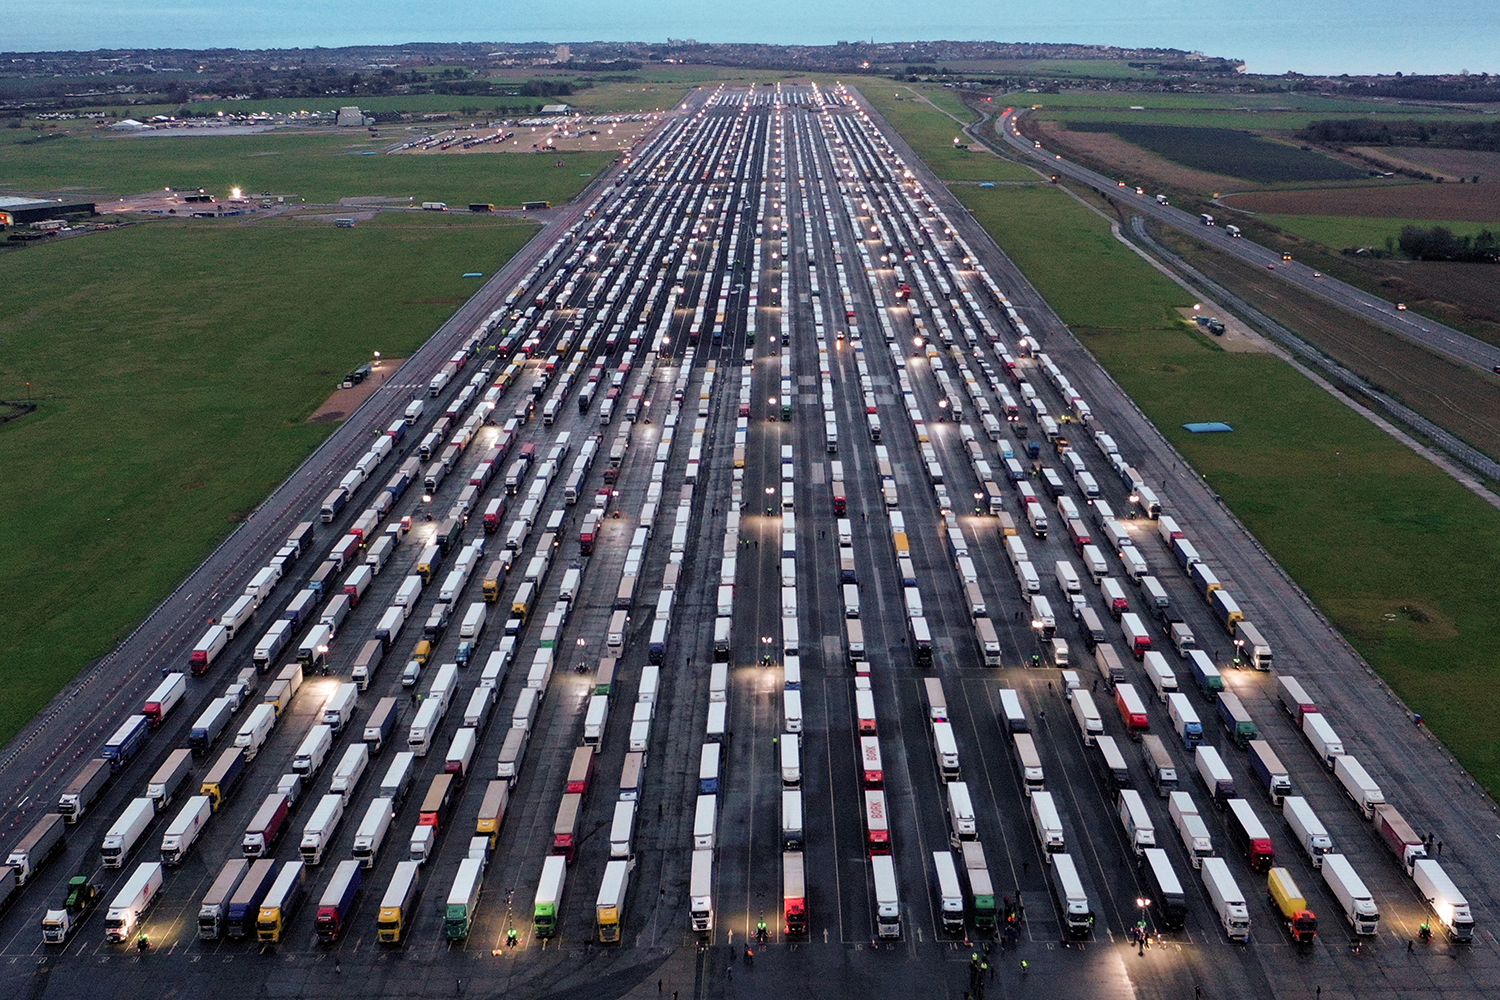 An aerial view shows lines of freight trucks parked on the tarmac at Manston Airport in England on Dec. 22, 2020, after France closed its borders to freight arriving from the United Kingdom due to the rapid spread of a new coronavirus strain. WILLIAM EDWARDS/AFP via Getty Images